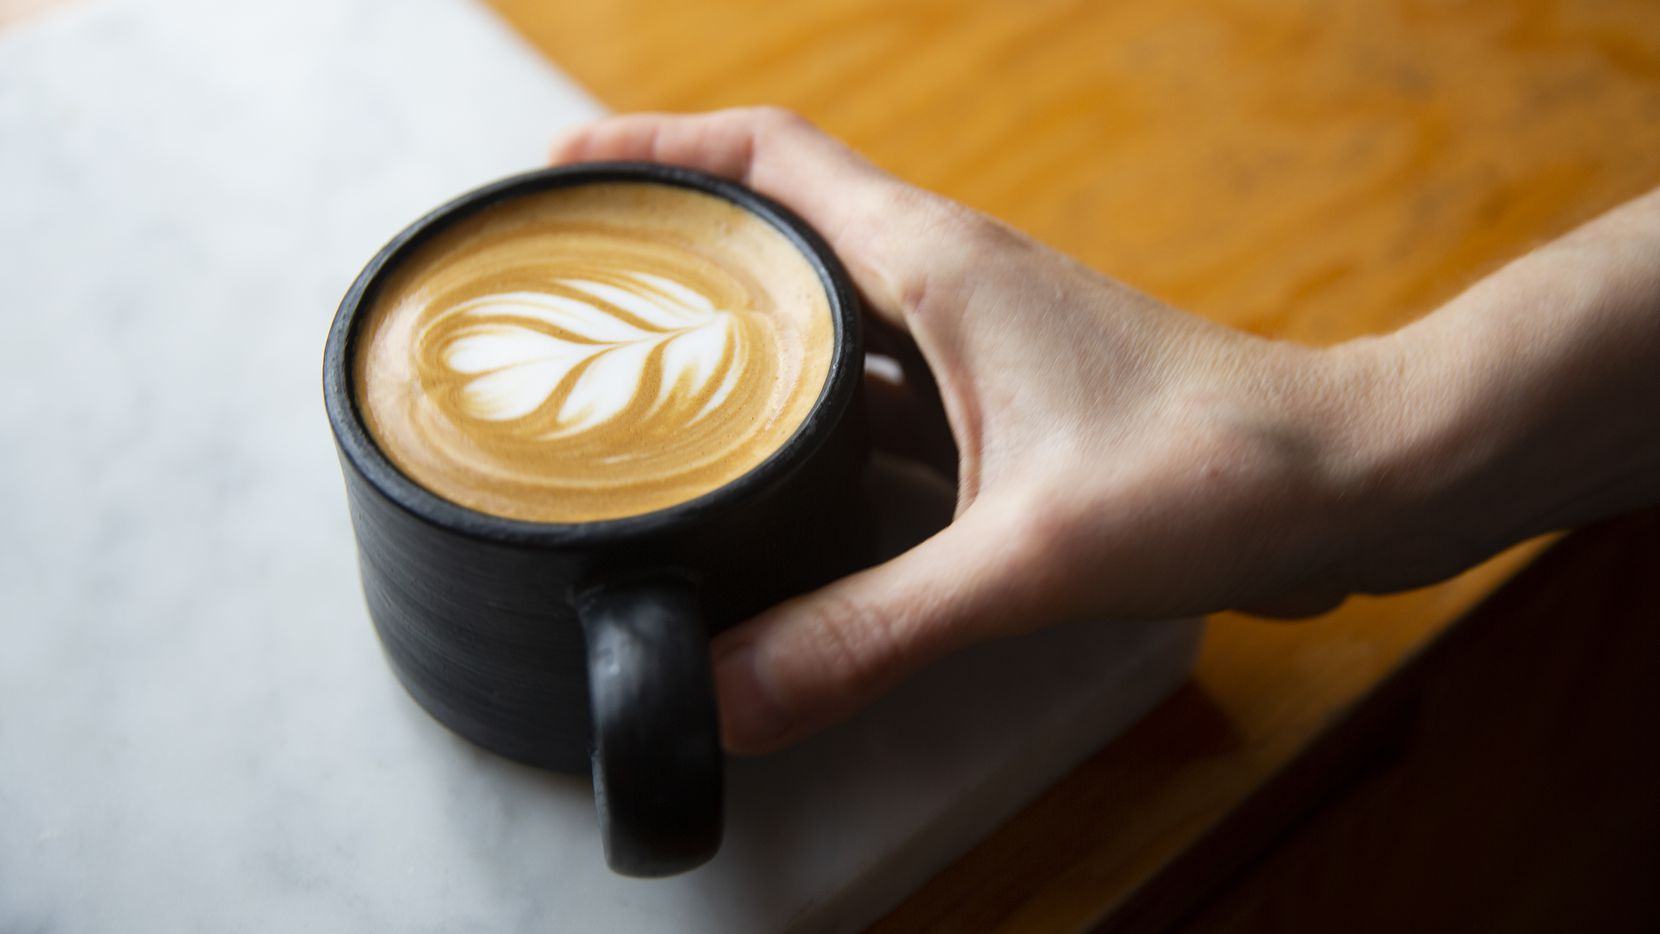 Fiction Coffee in Dallas opened a new spot in Irving's Las Colinas.